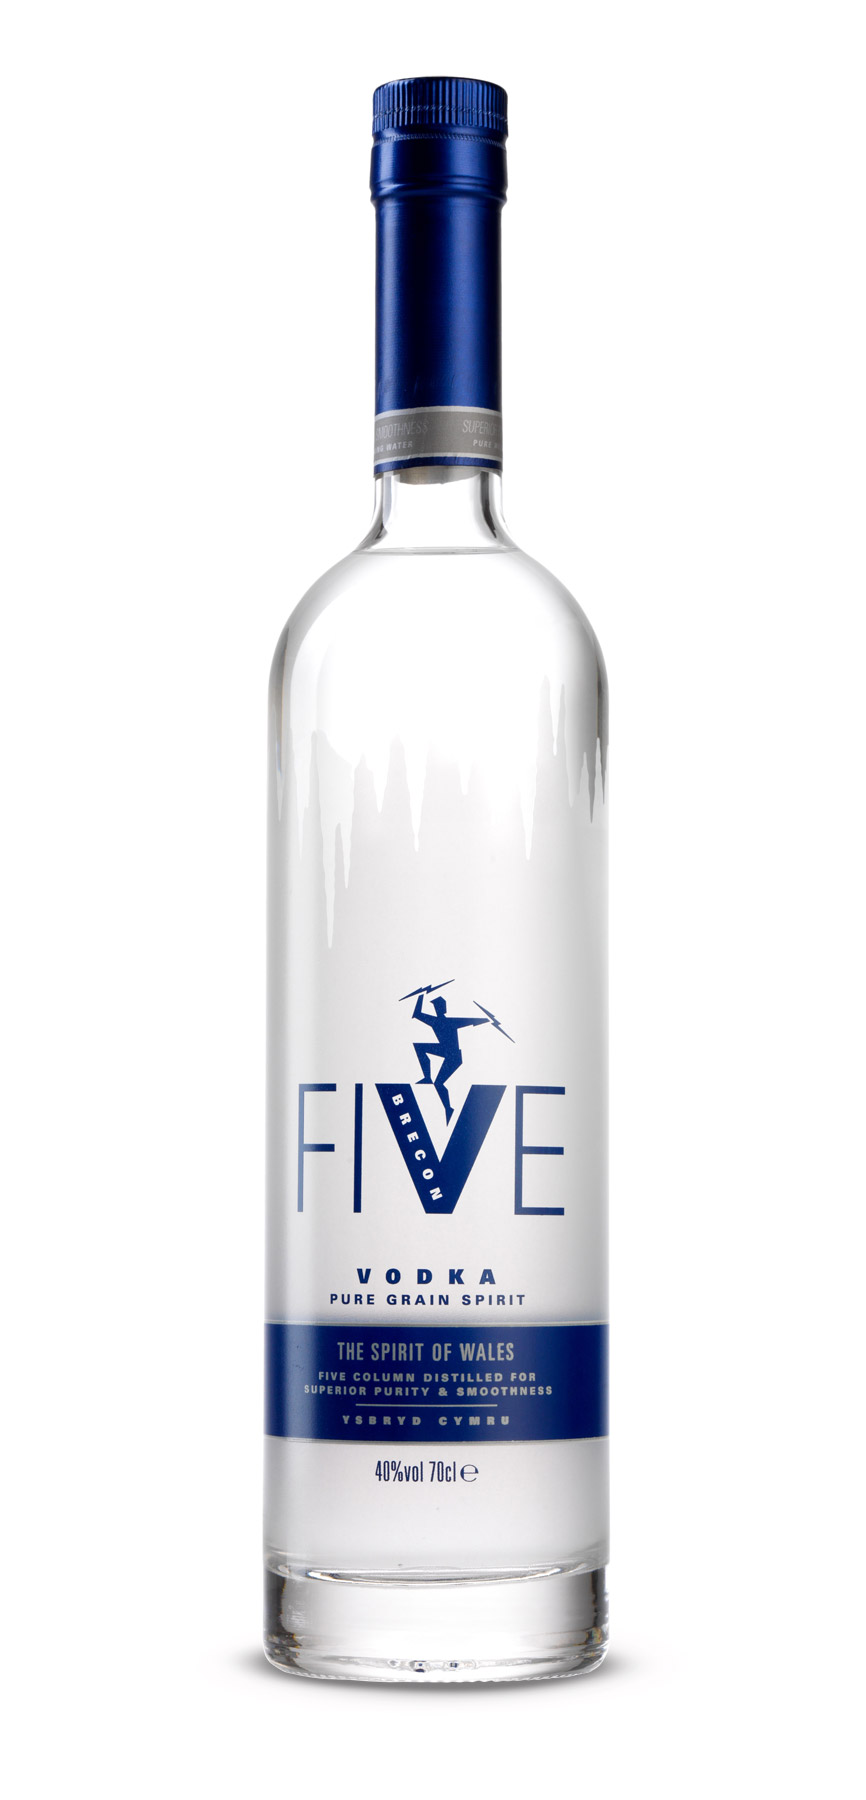 Five Vodka bottle photographed on a white background